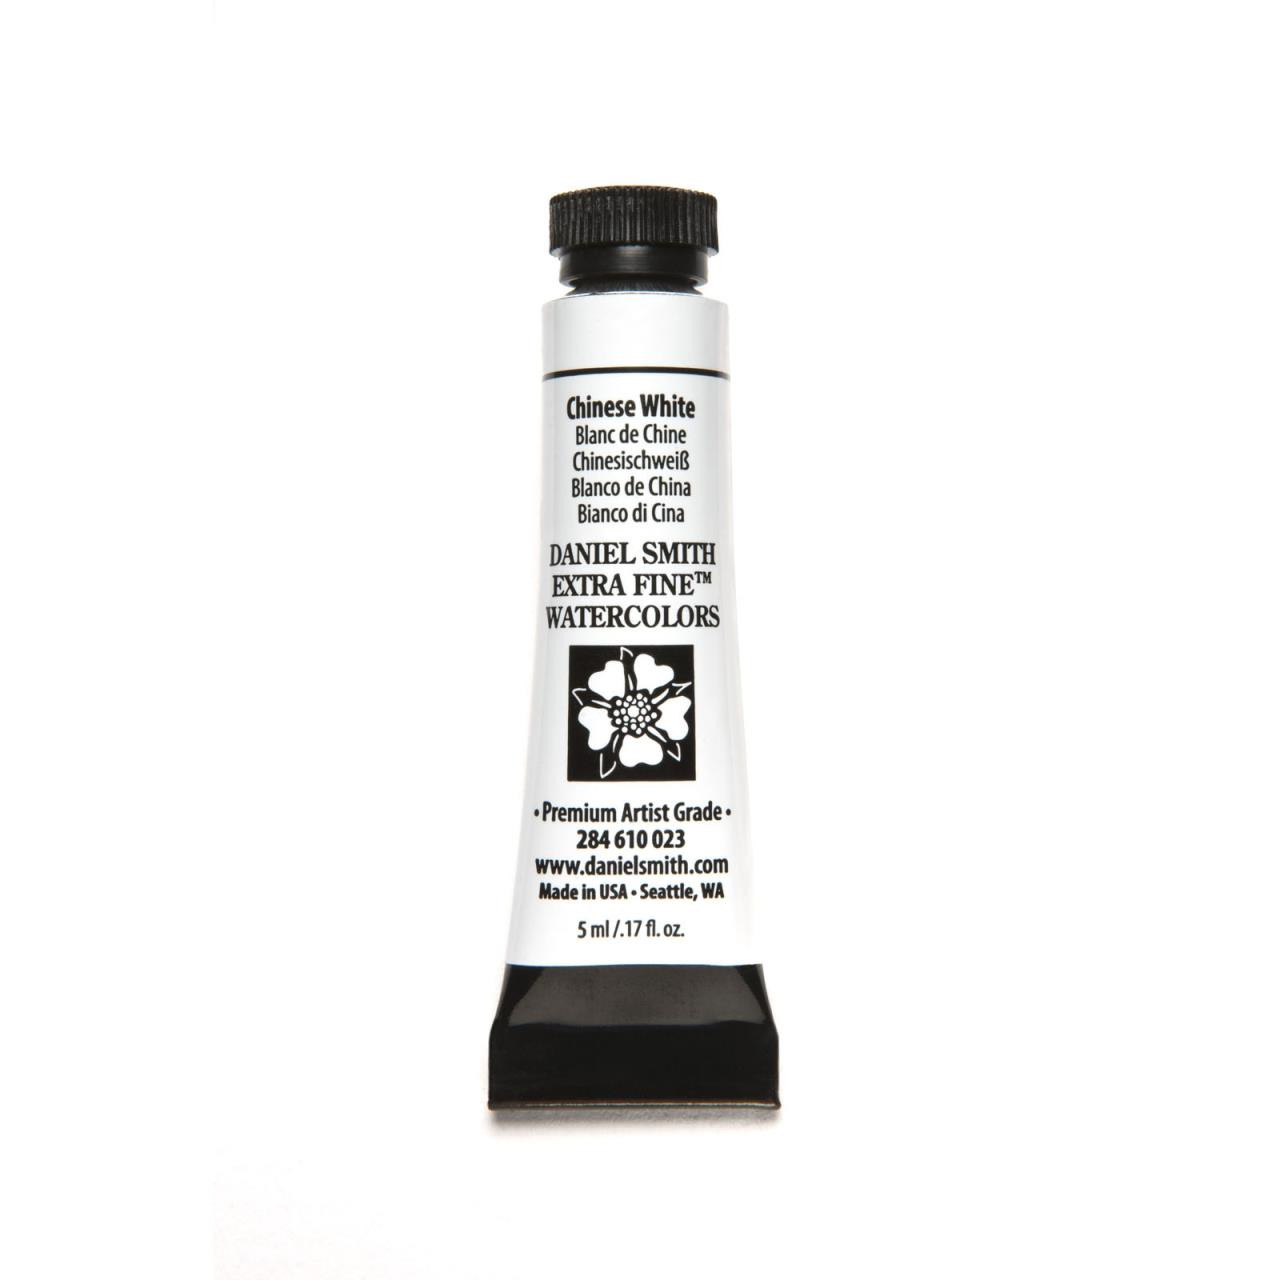 Chinese White, DANIEL SMITH Extra Fine Watercolors 5ml Tubes -